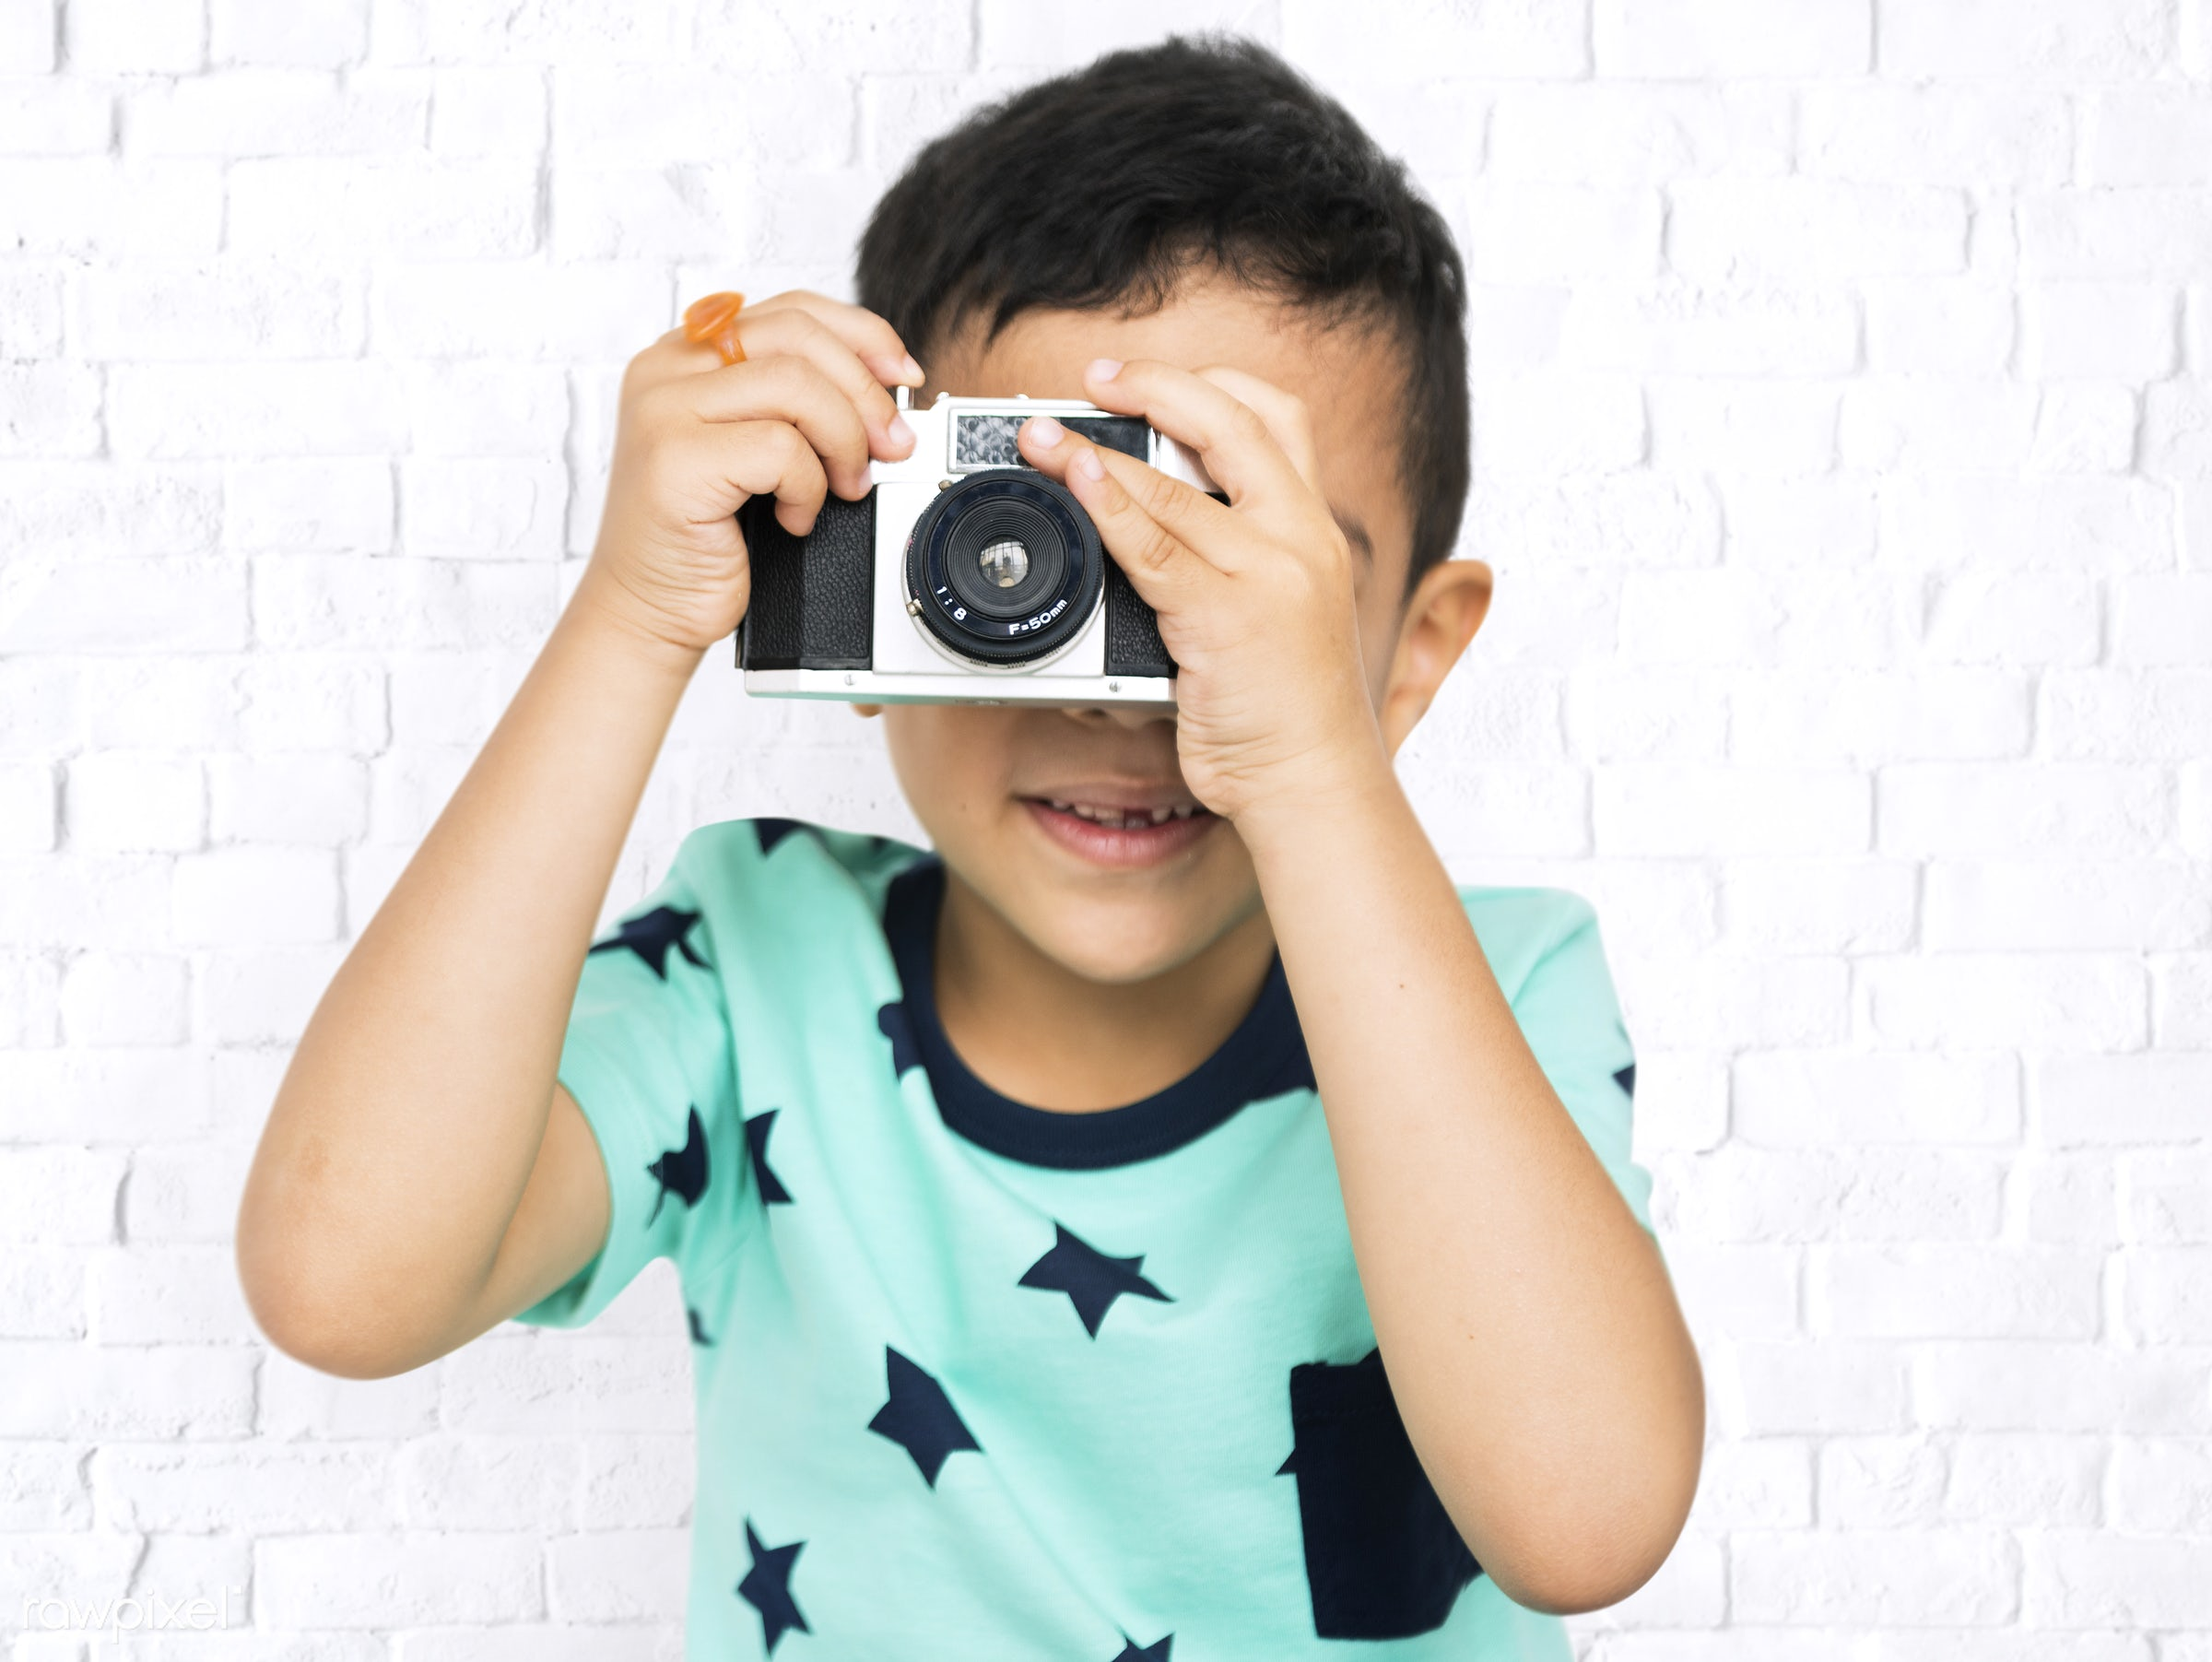 studio, expression, person, photograph, little, recreation, people, kid, lifestyle, photographer, taking photo, smiling,...